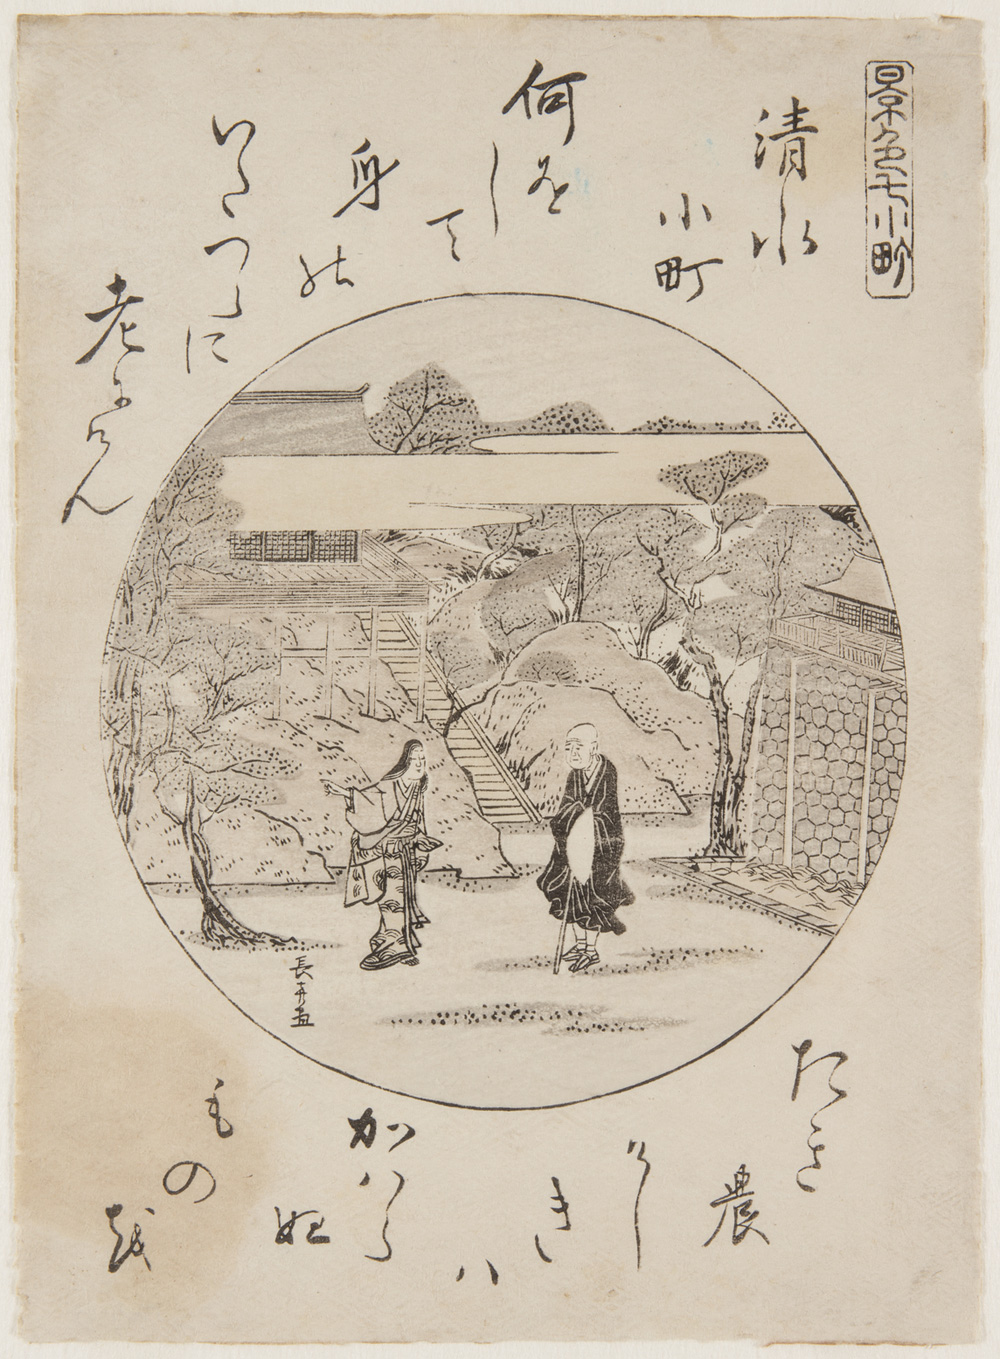 Japanese print of two figures dressed in traditional clothes standing in a garden.